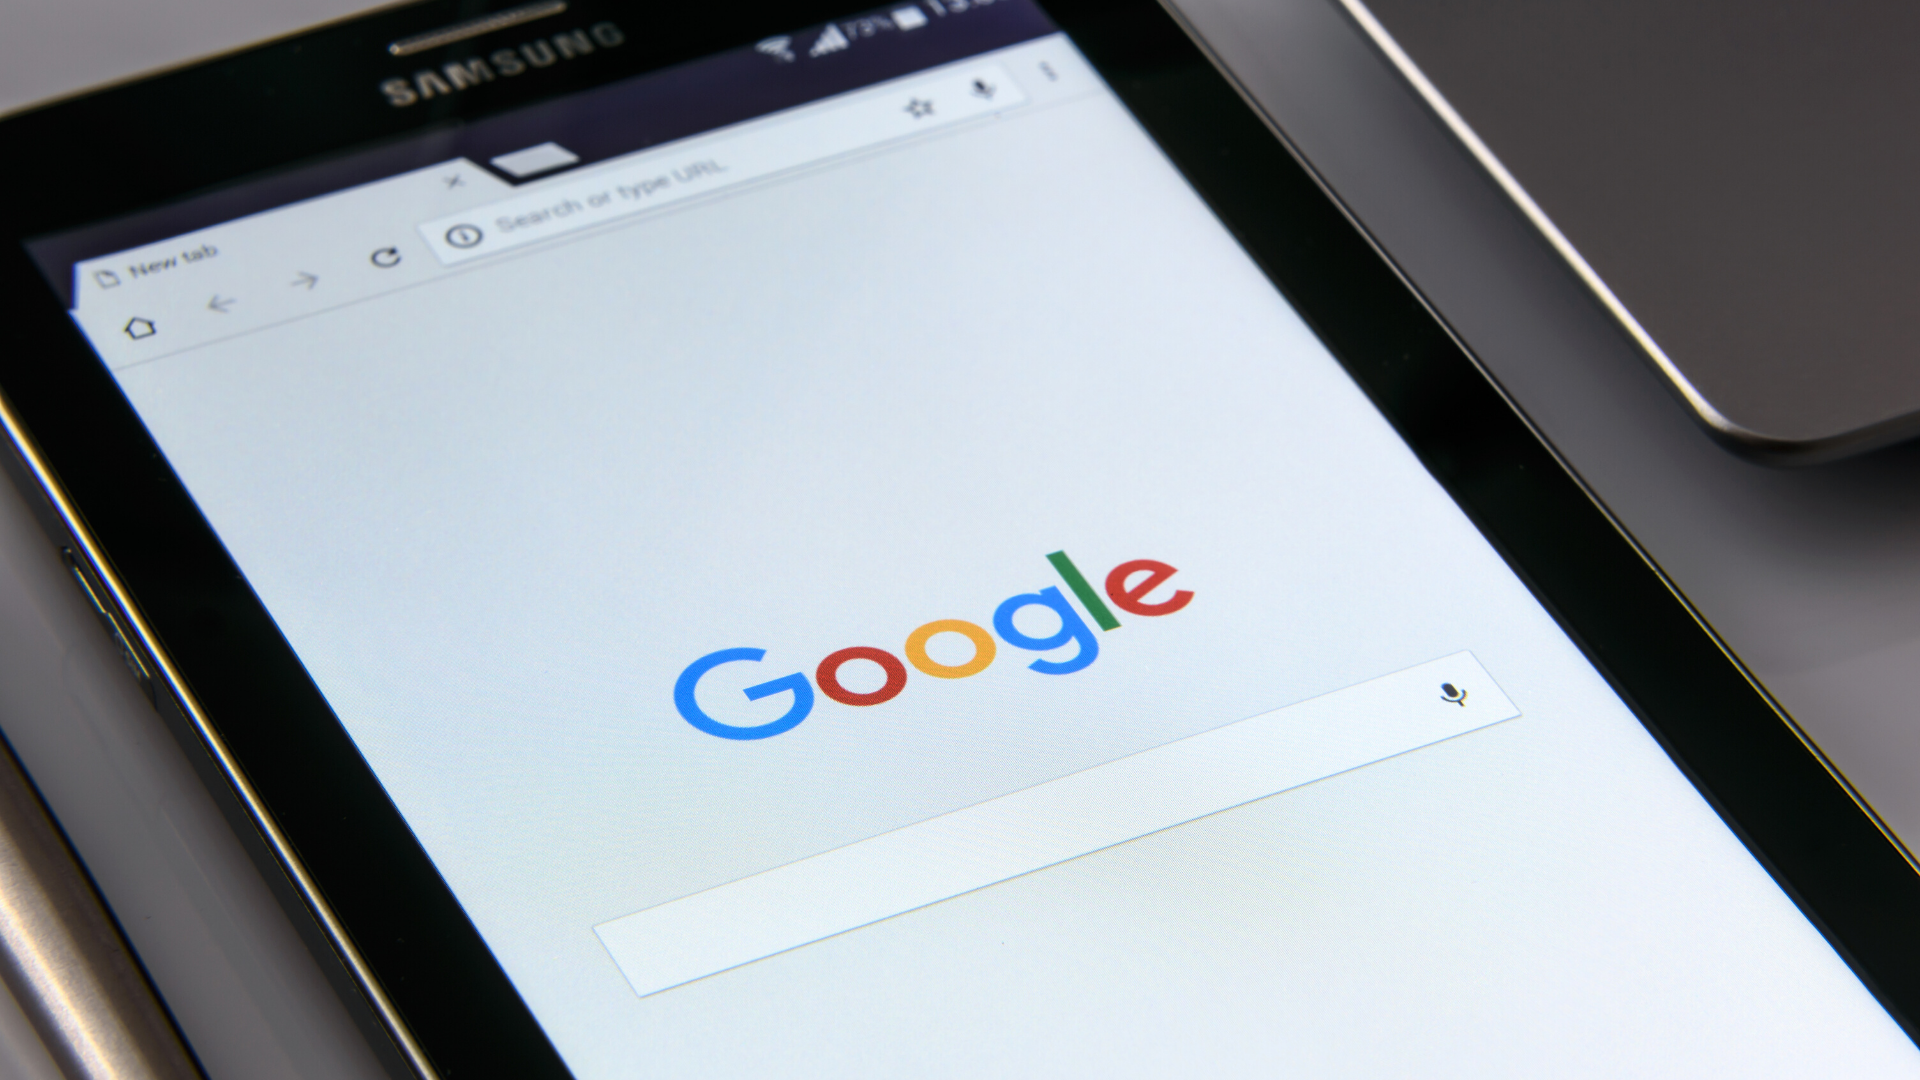 Optimize Your Website for Google in 3 Easy Steps